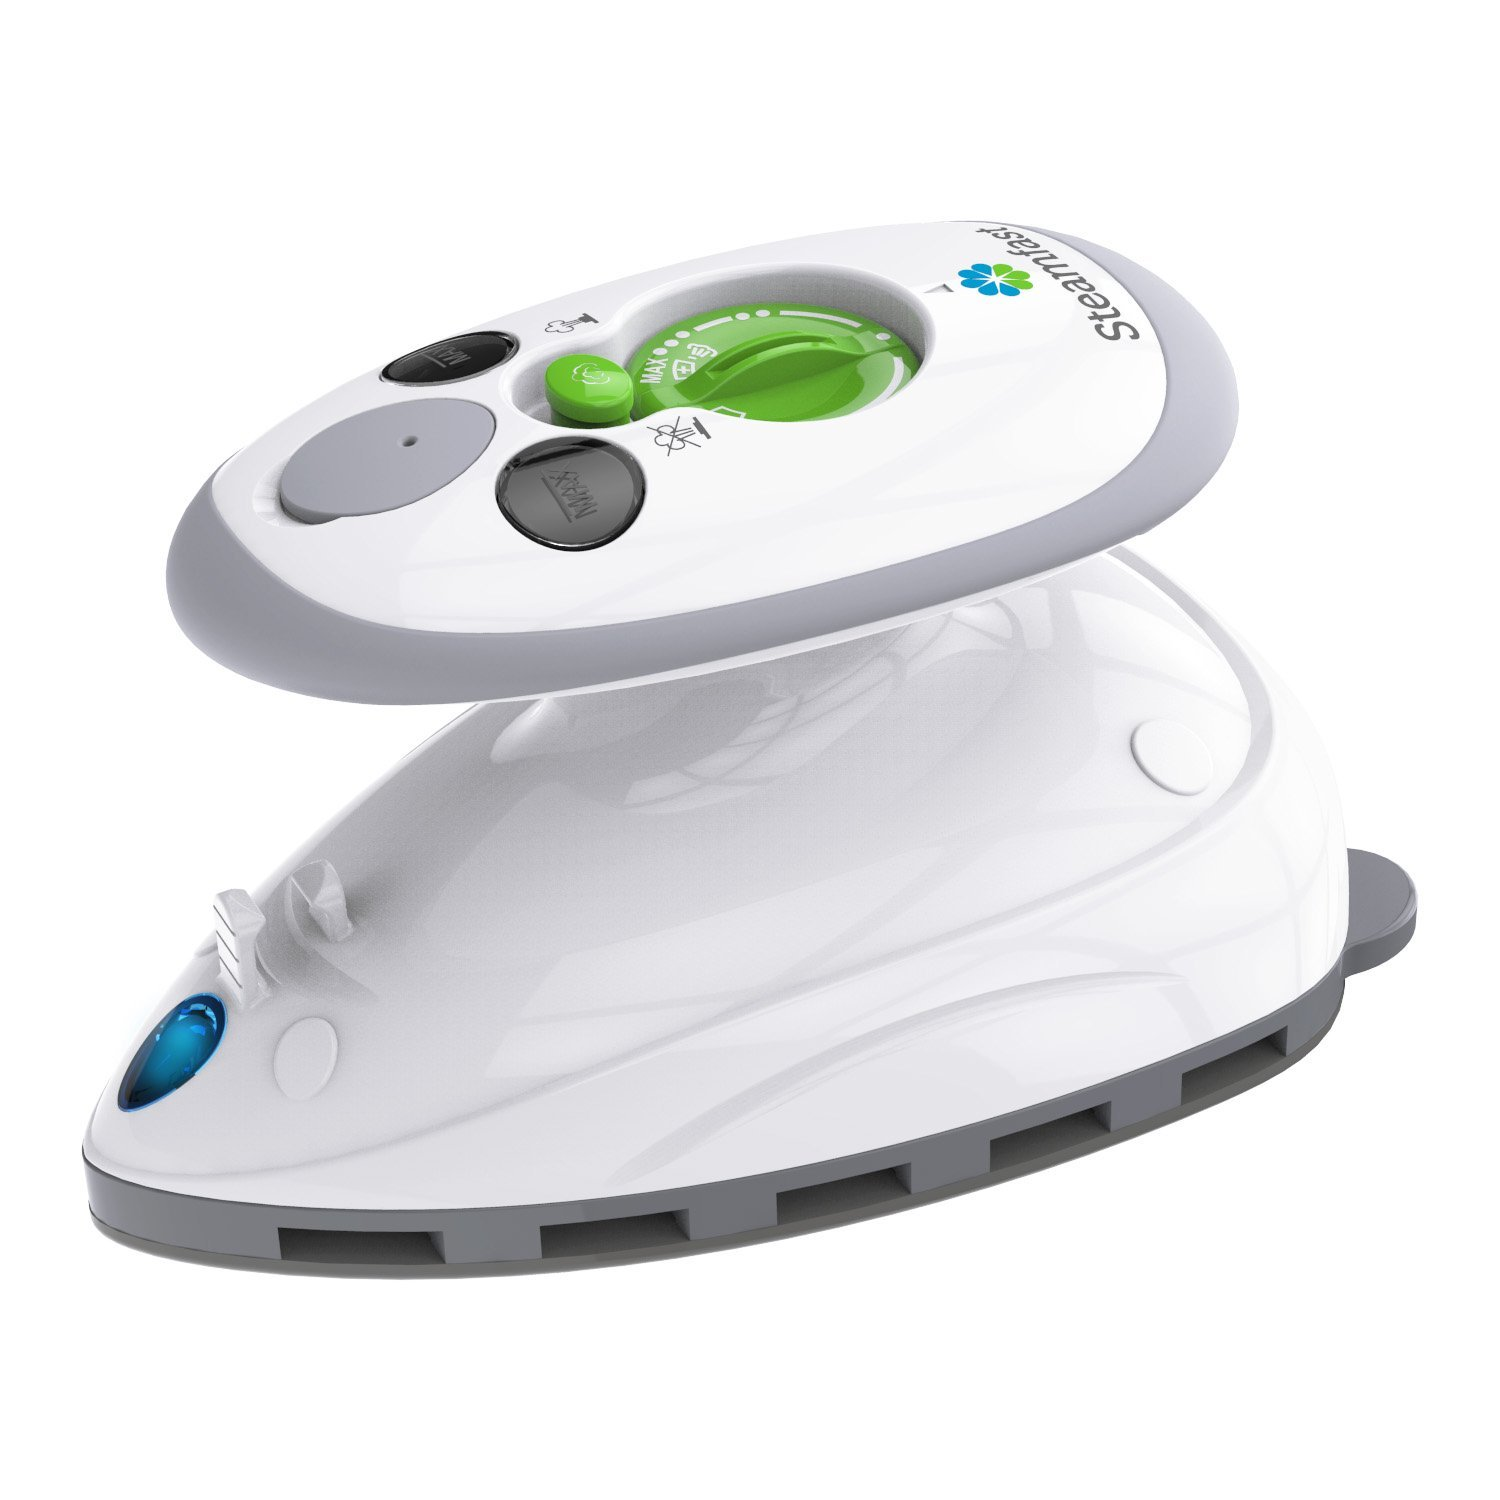 Review of the Best Travel Steamer—Steamfast SF-717 Home-and-Away Mini Travel Steamer Iron